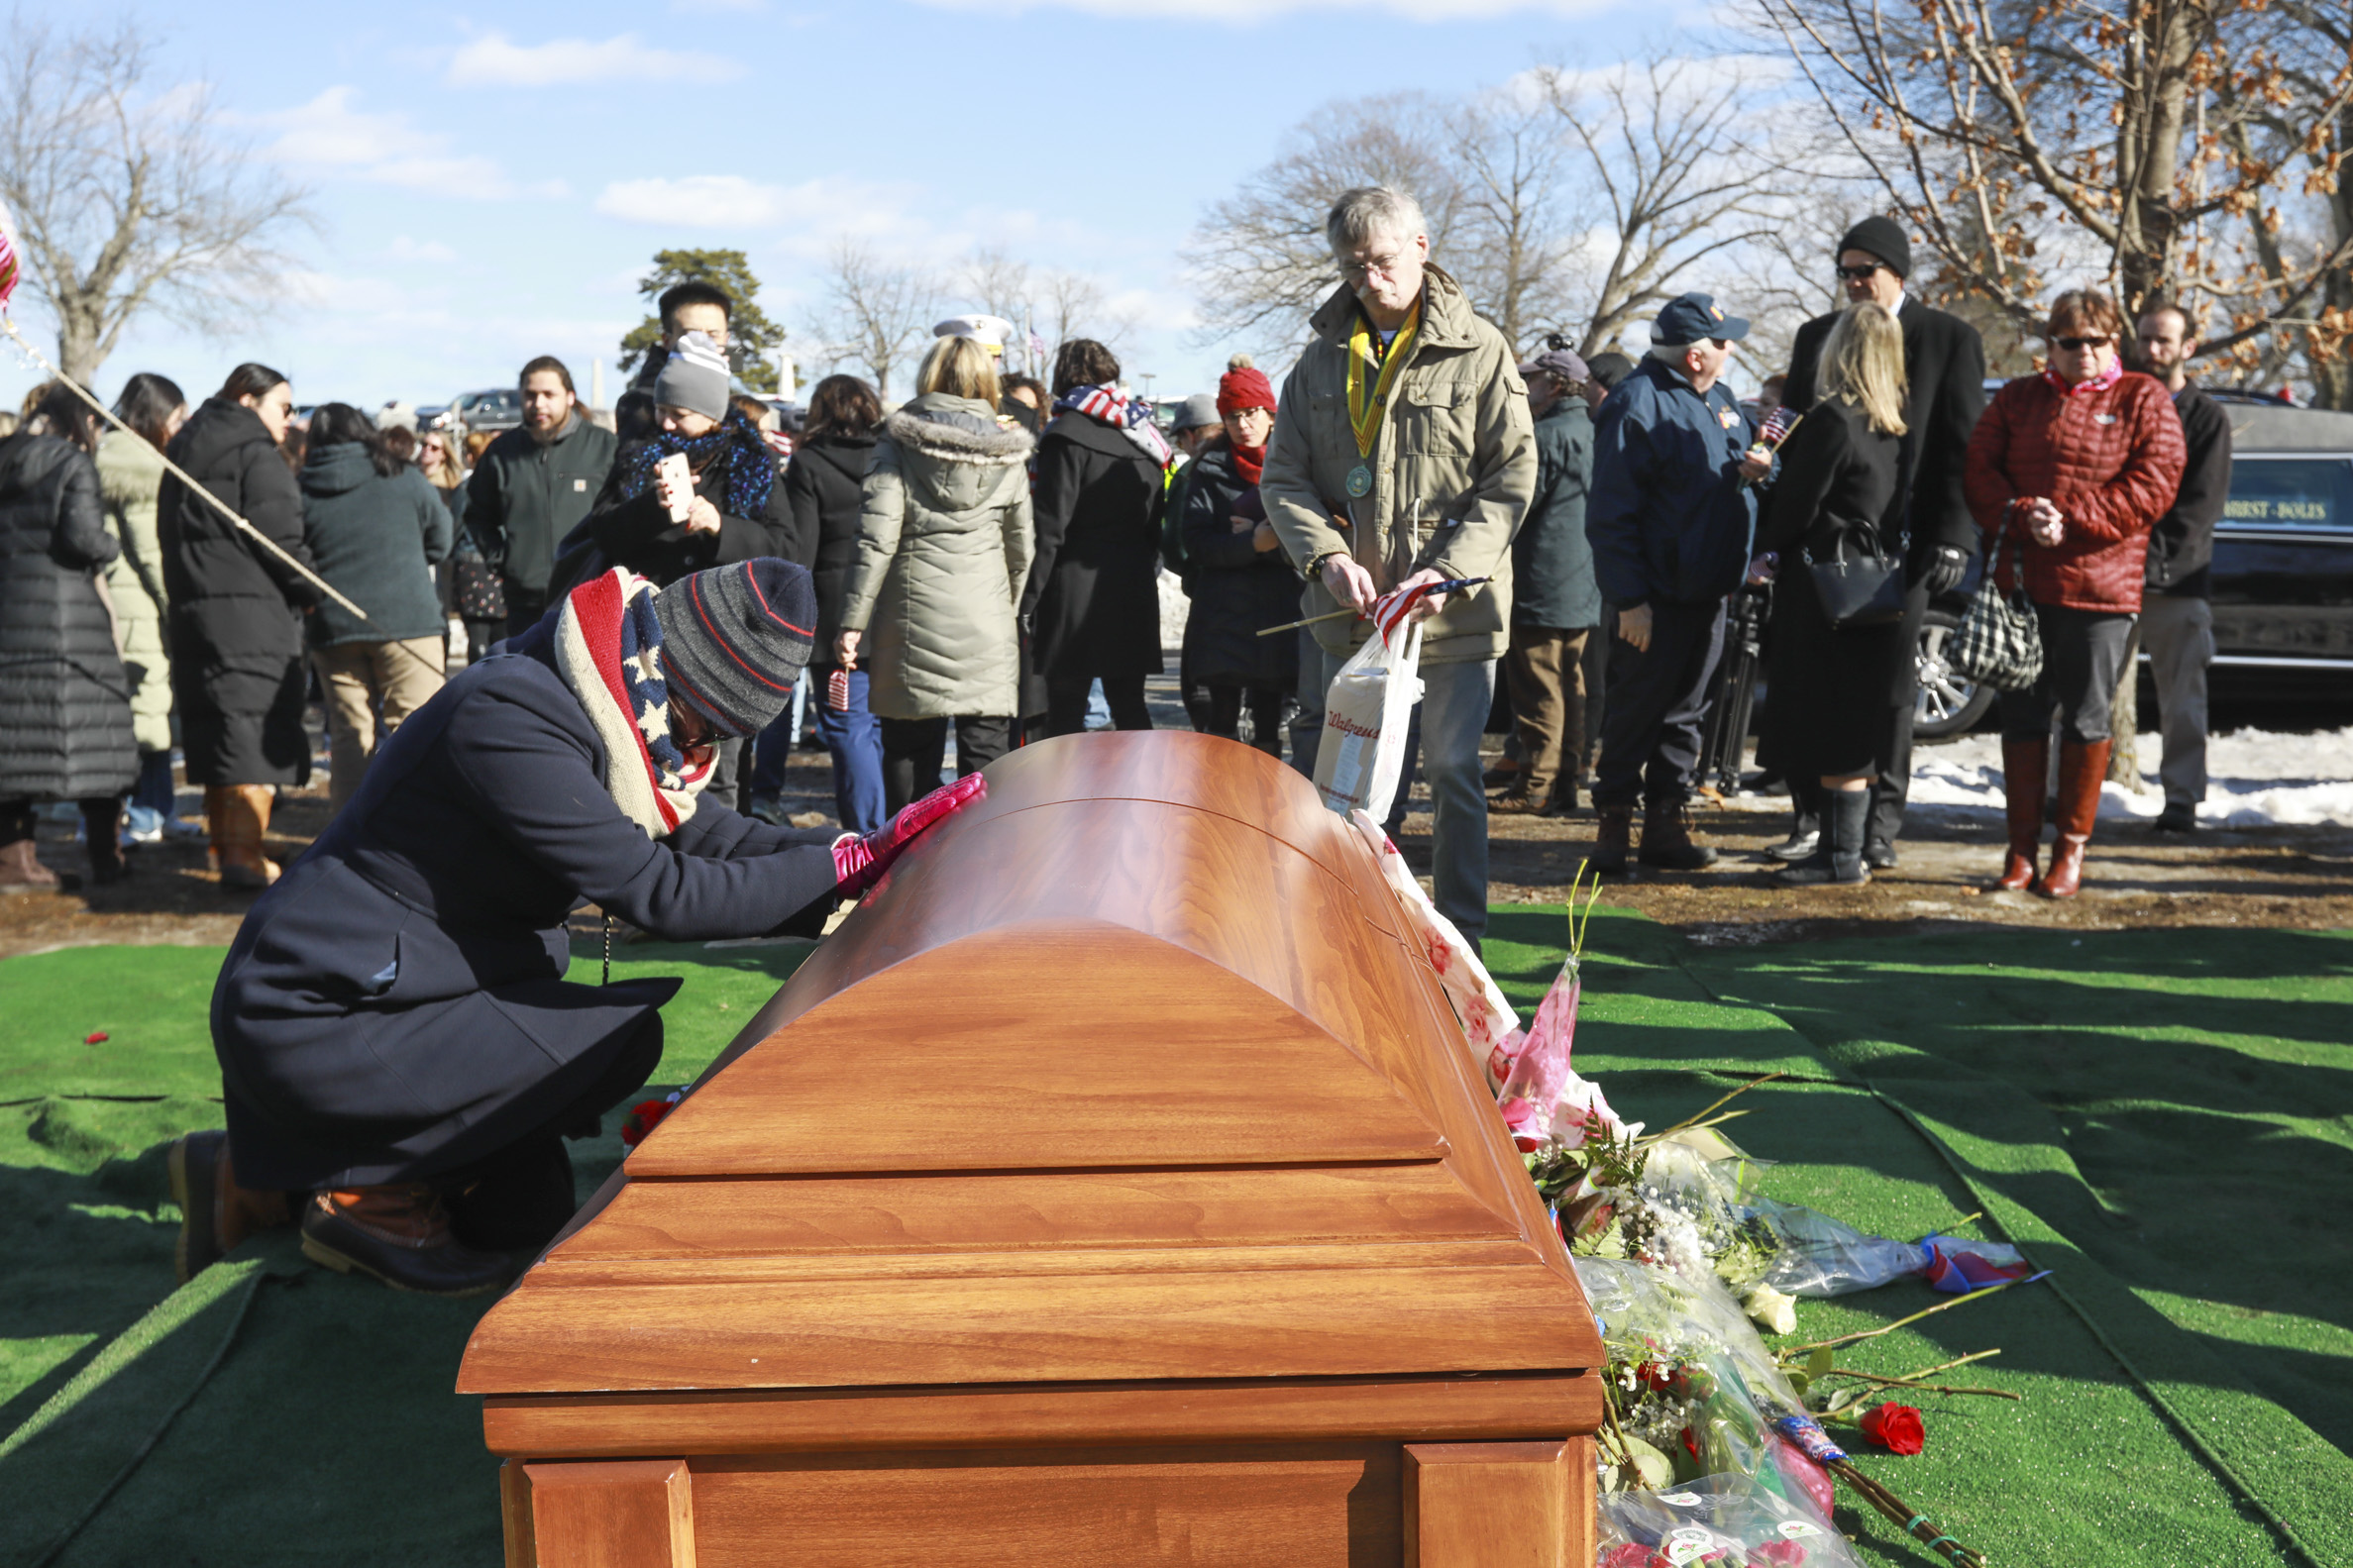 Hundreds attend the funeral for Army Veteran James McCue to pay their respects at the Bellevue Cemetery on Thursday, February 14, 2019 in Lawrence, Massachusetts.